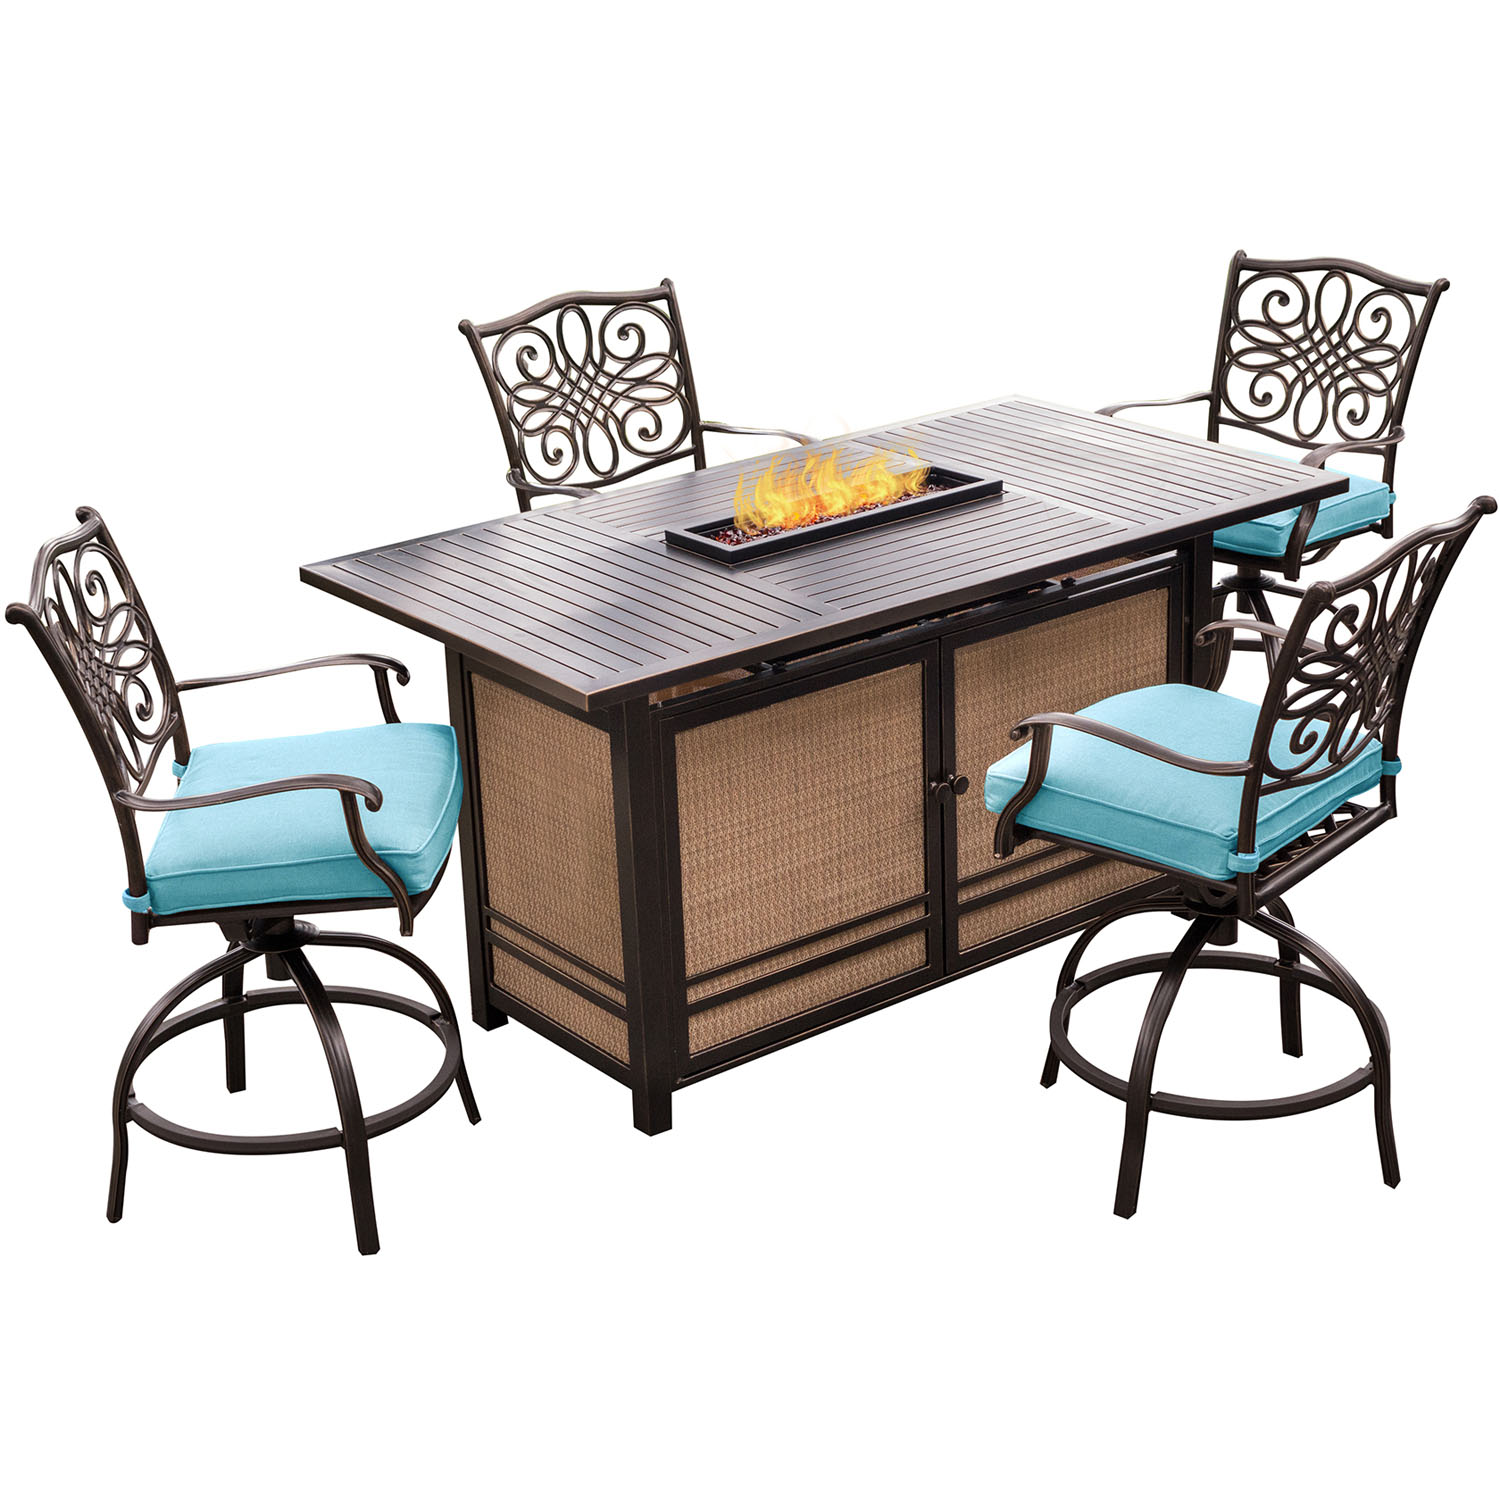 Hanover Traditions 5 Piece High Dining Set In Blue With 4